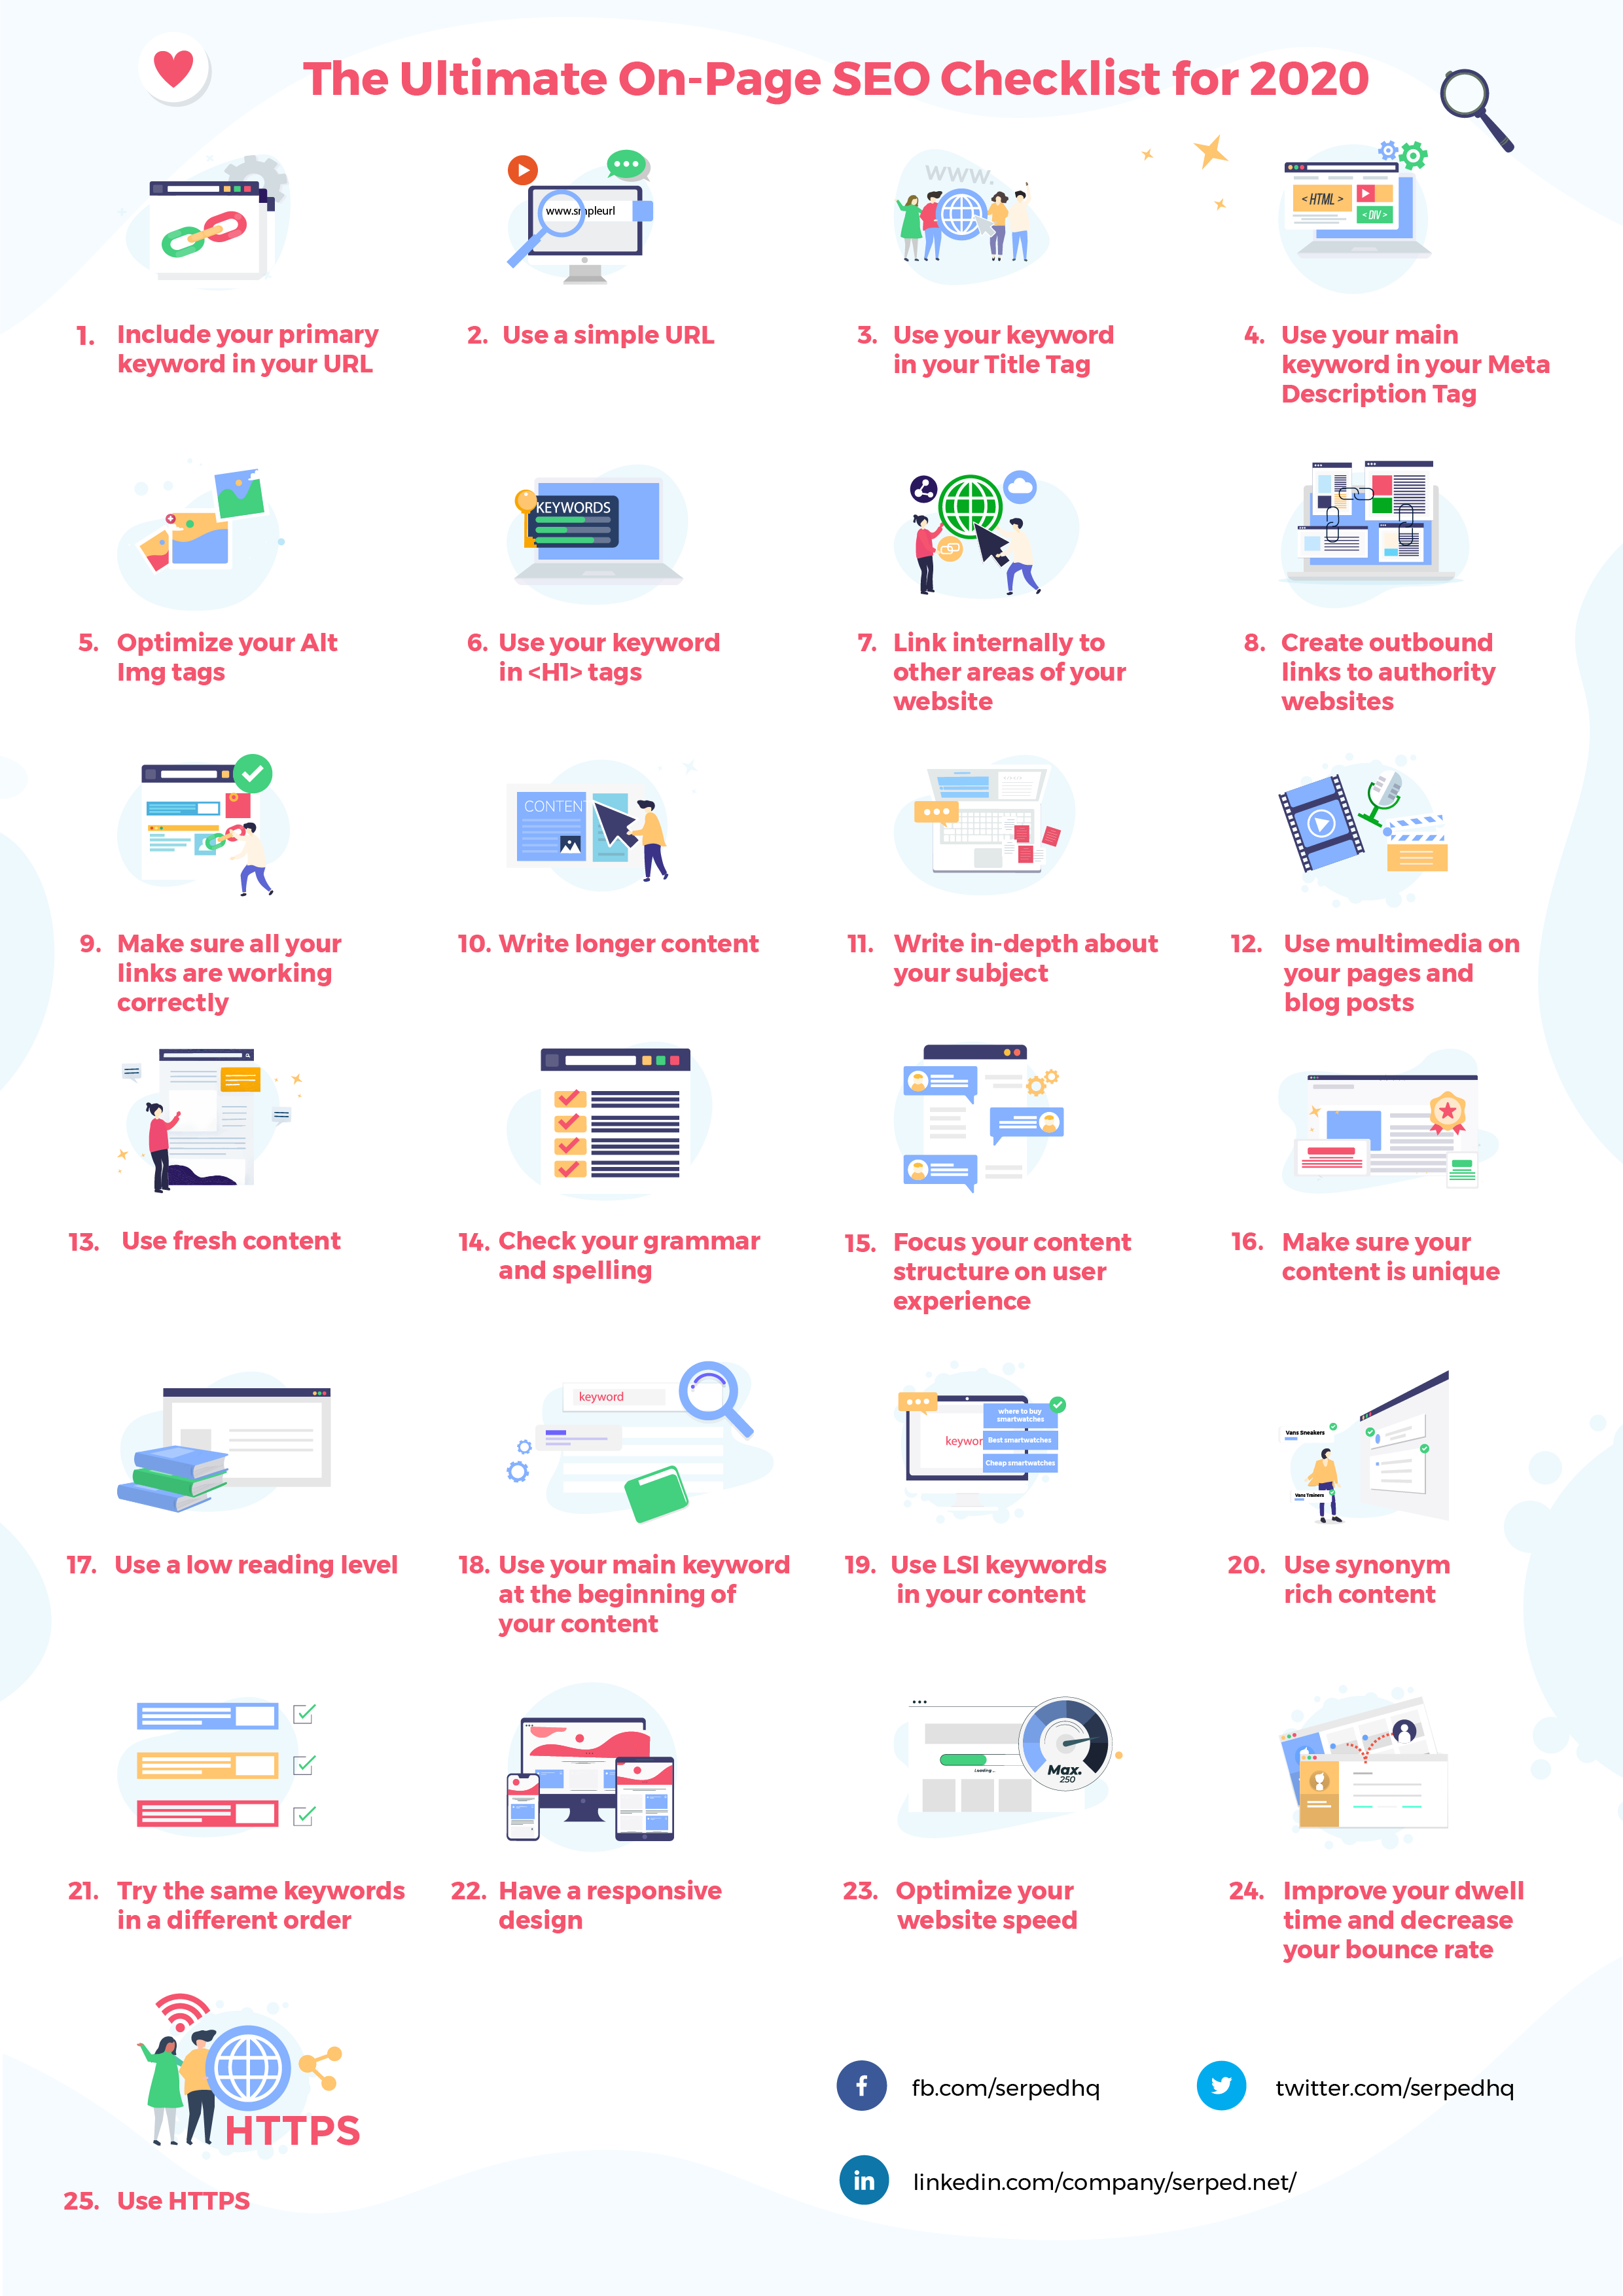 On-page SEO Infographic